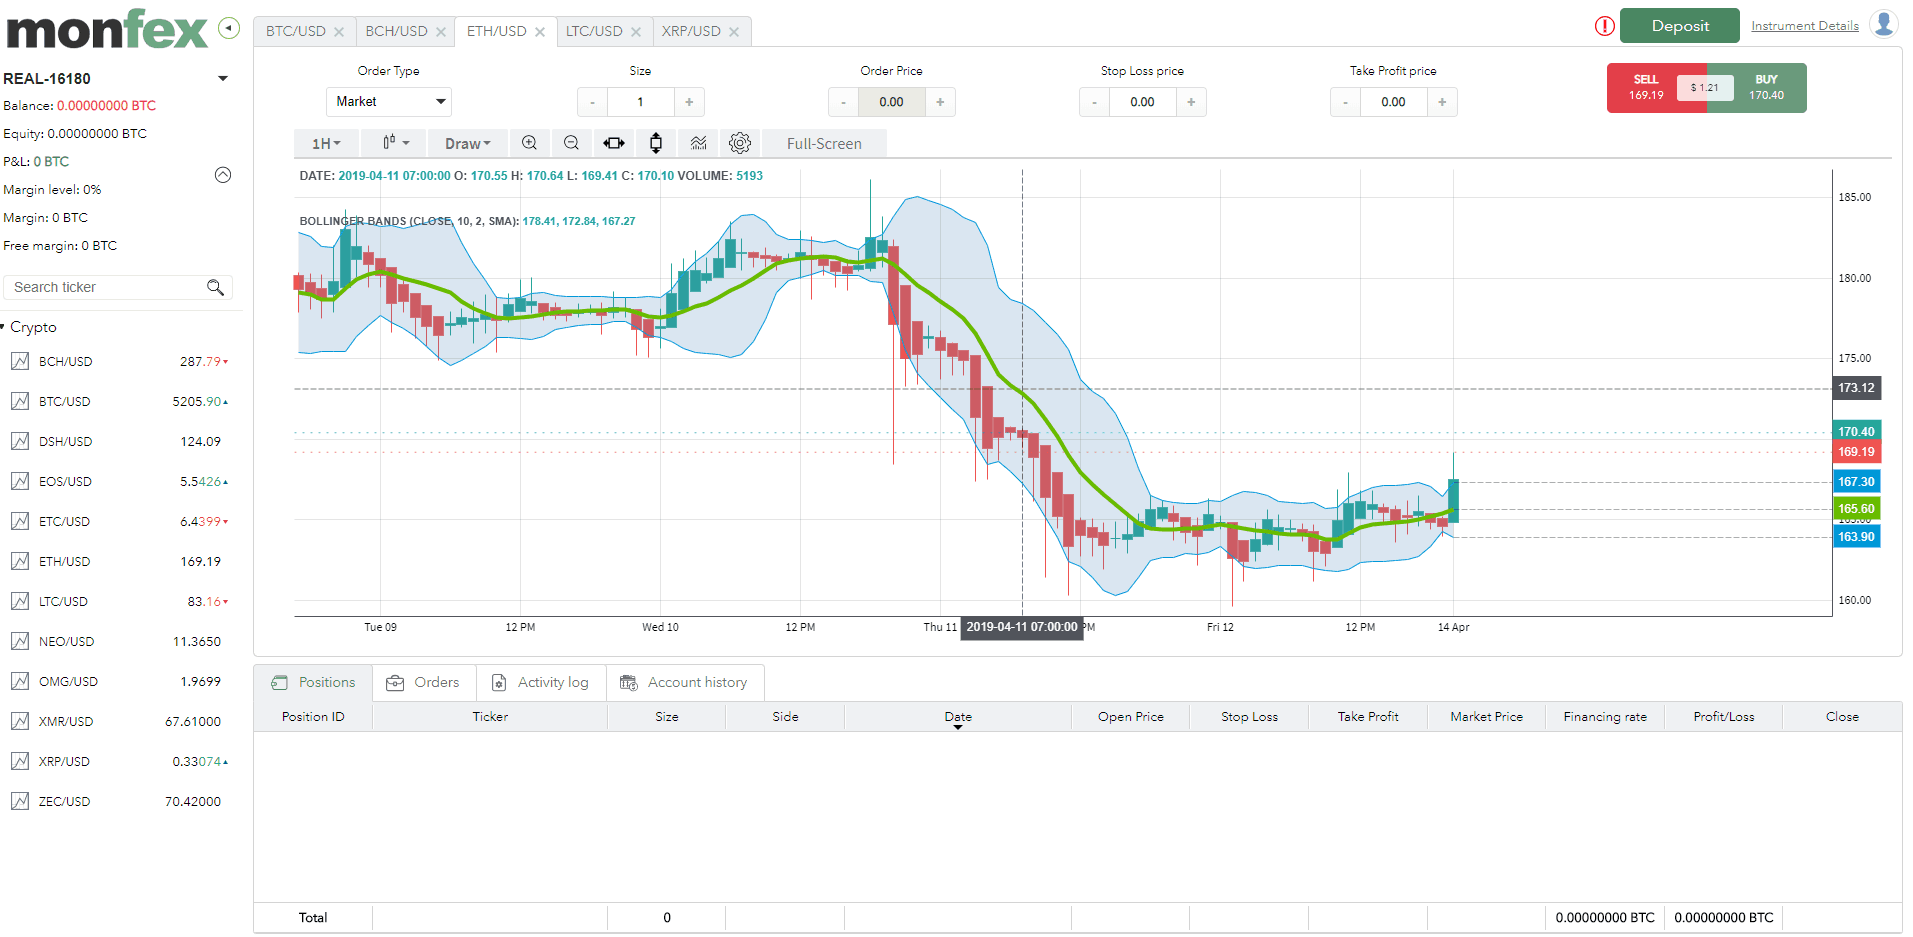 Monfex offer a sleek and simple UI which makes trading easy